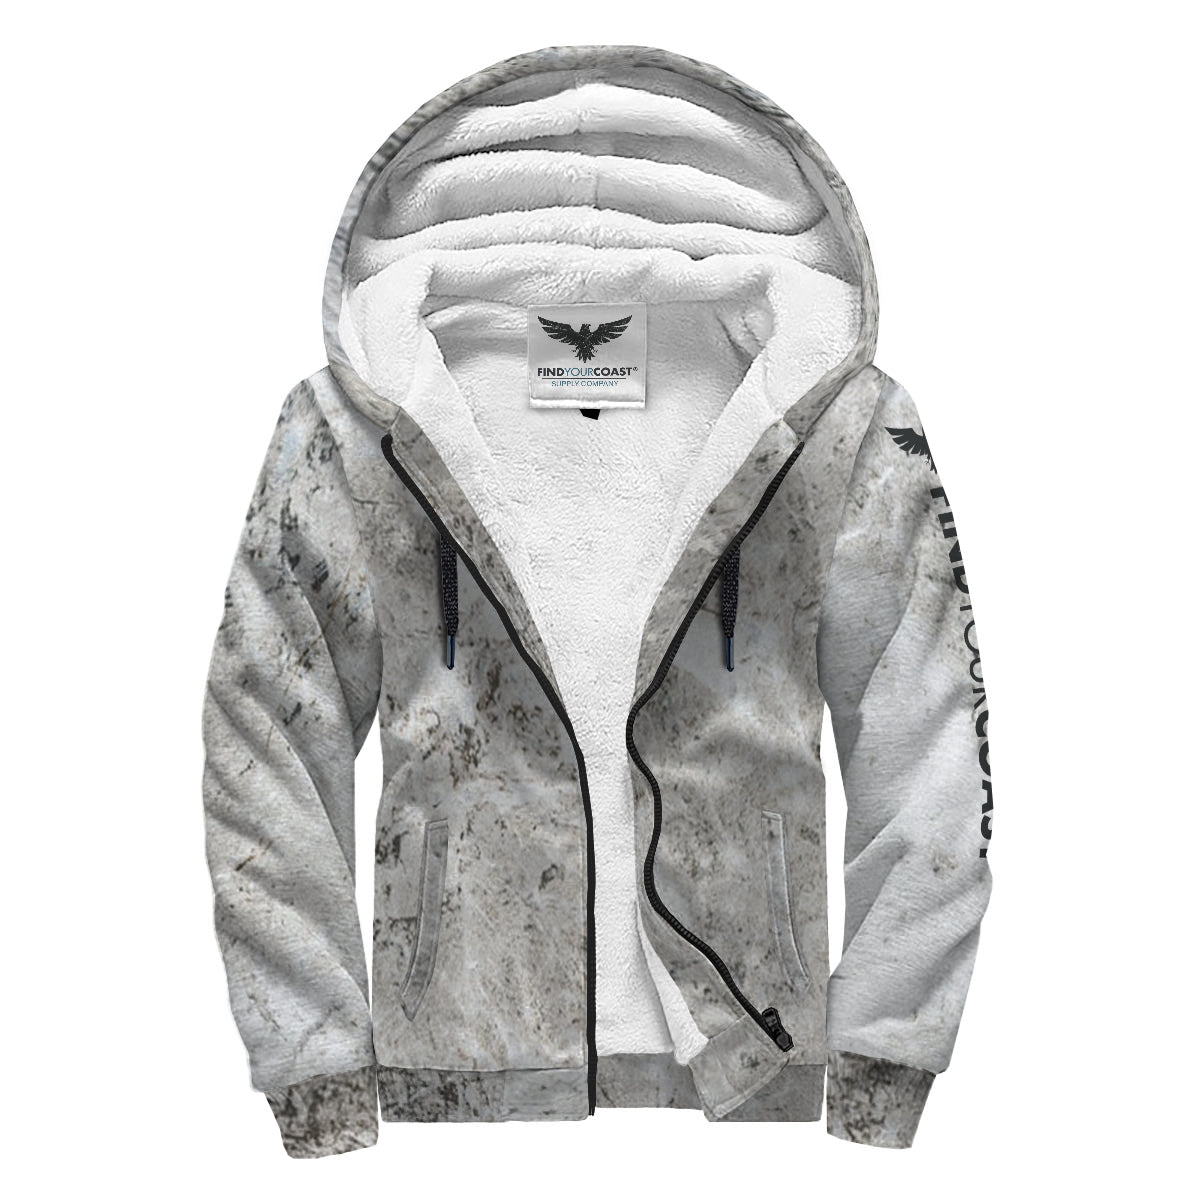 Find Your Coast Slate Sherpa Lined Zip Up Hoodie - Find Your Coast Supply Co.